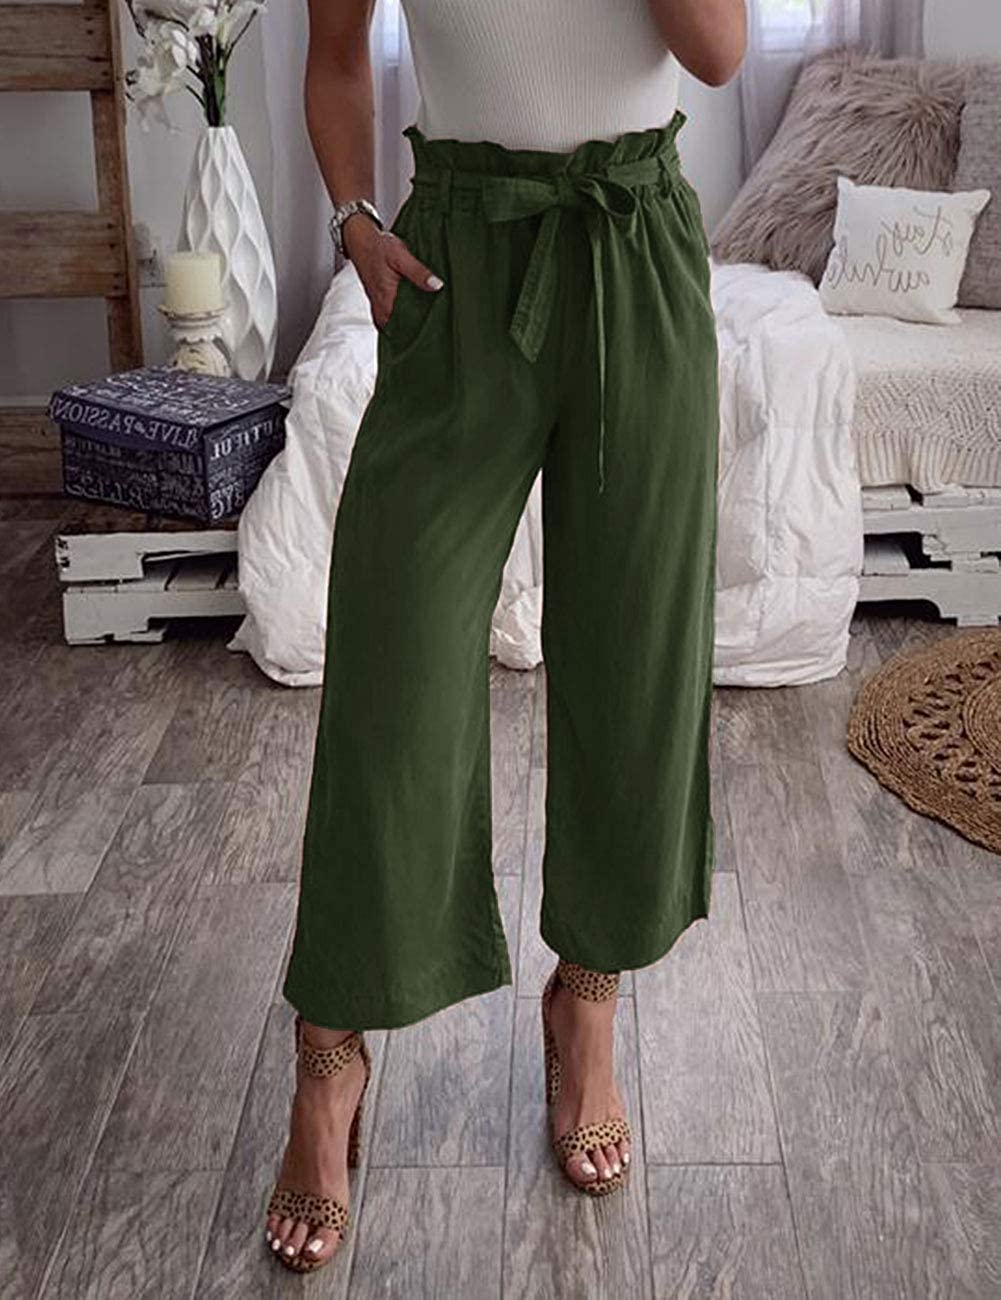 MEROKEETY Womens Elastic High Waist Wide Leg Casual Belted Paper Bag Pants with Pockets